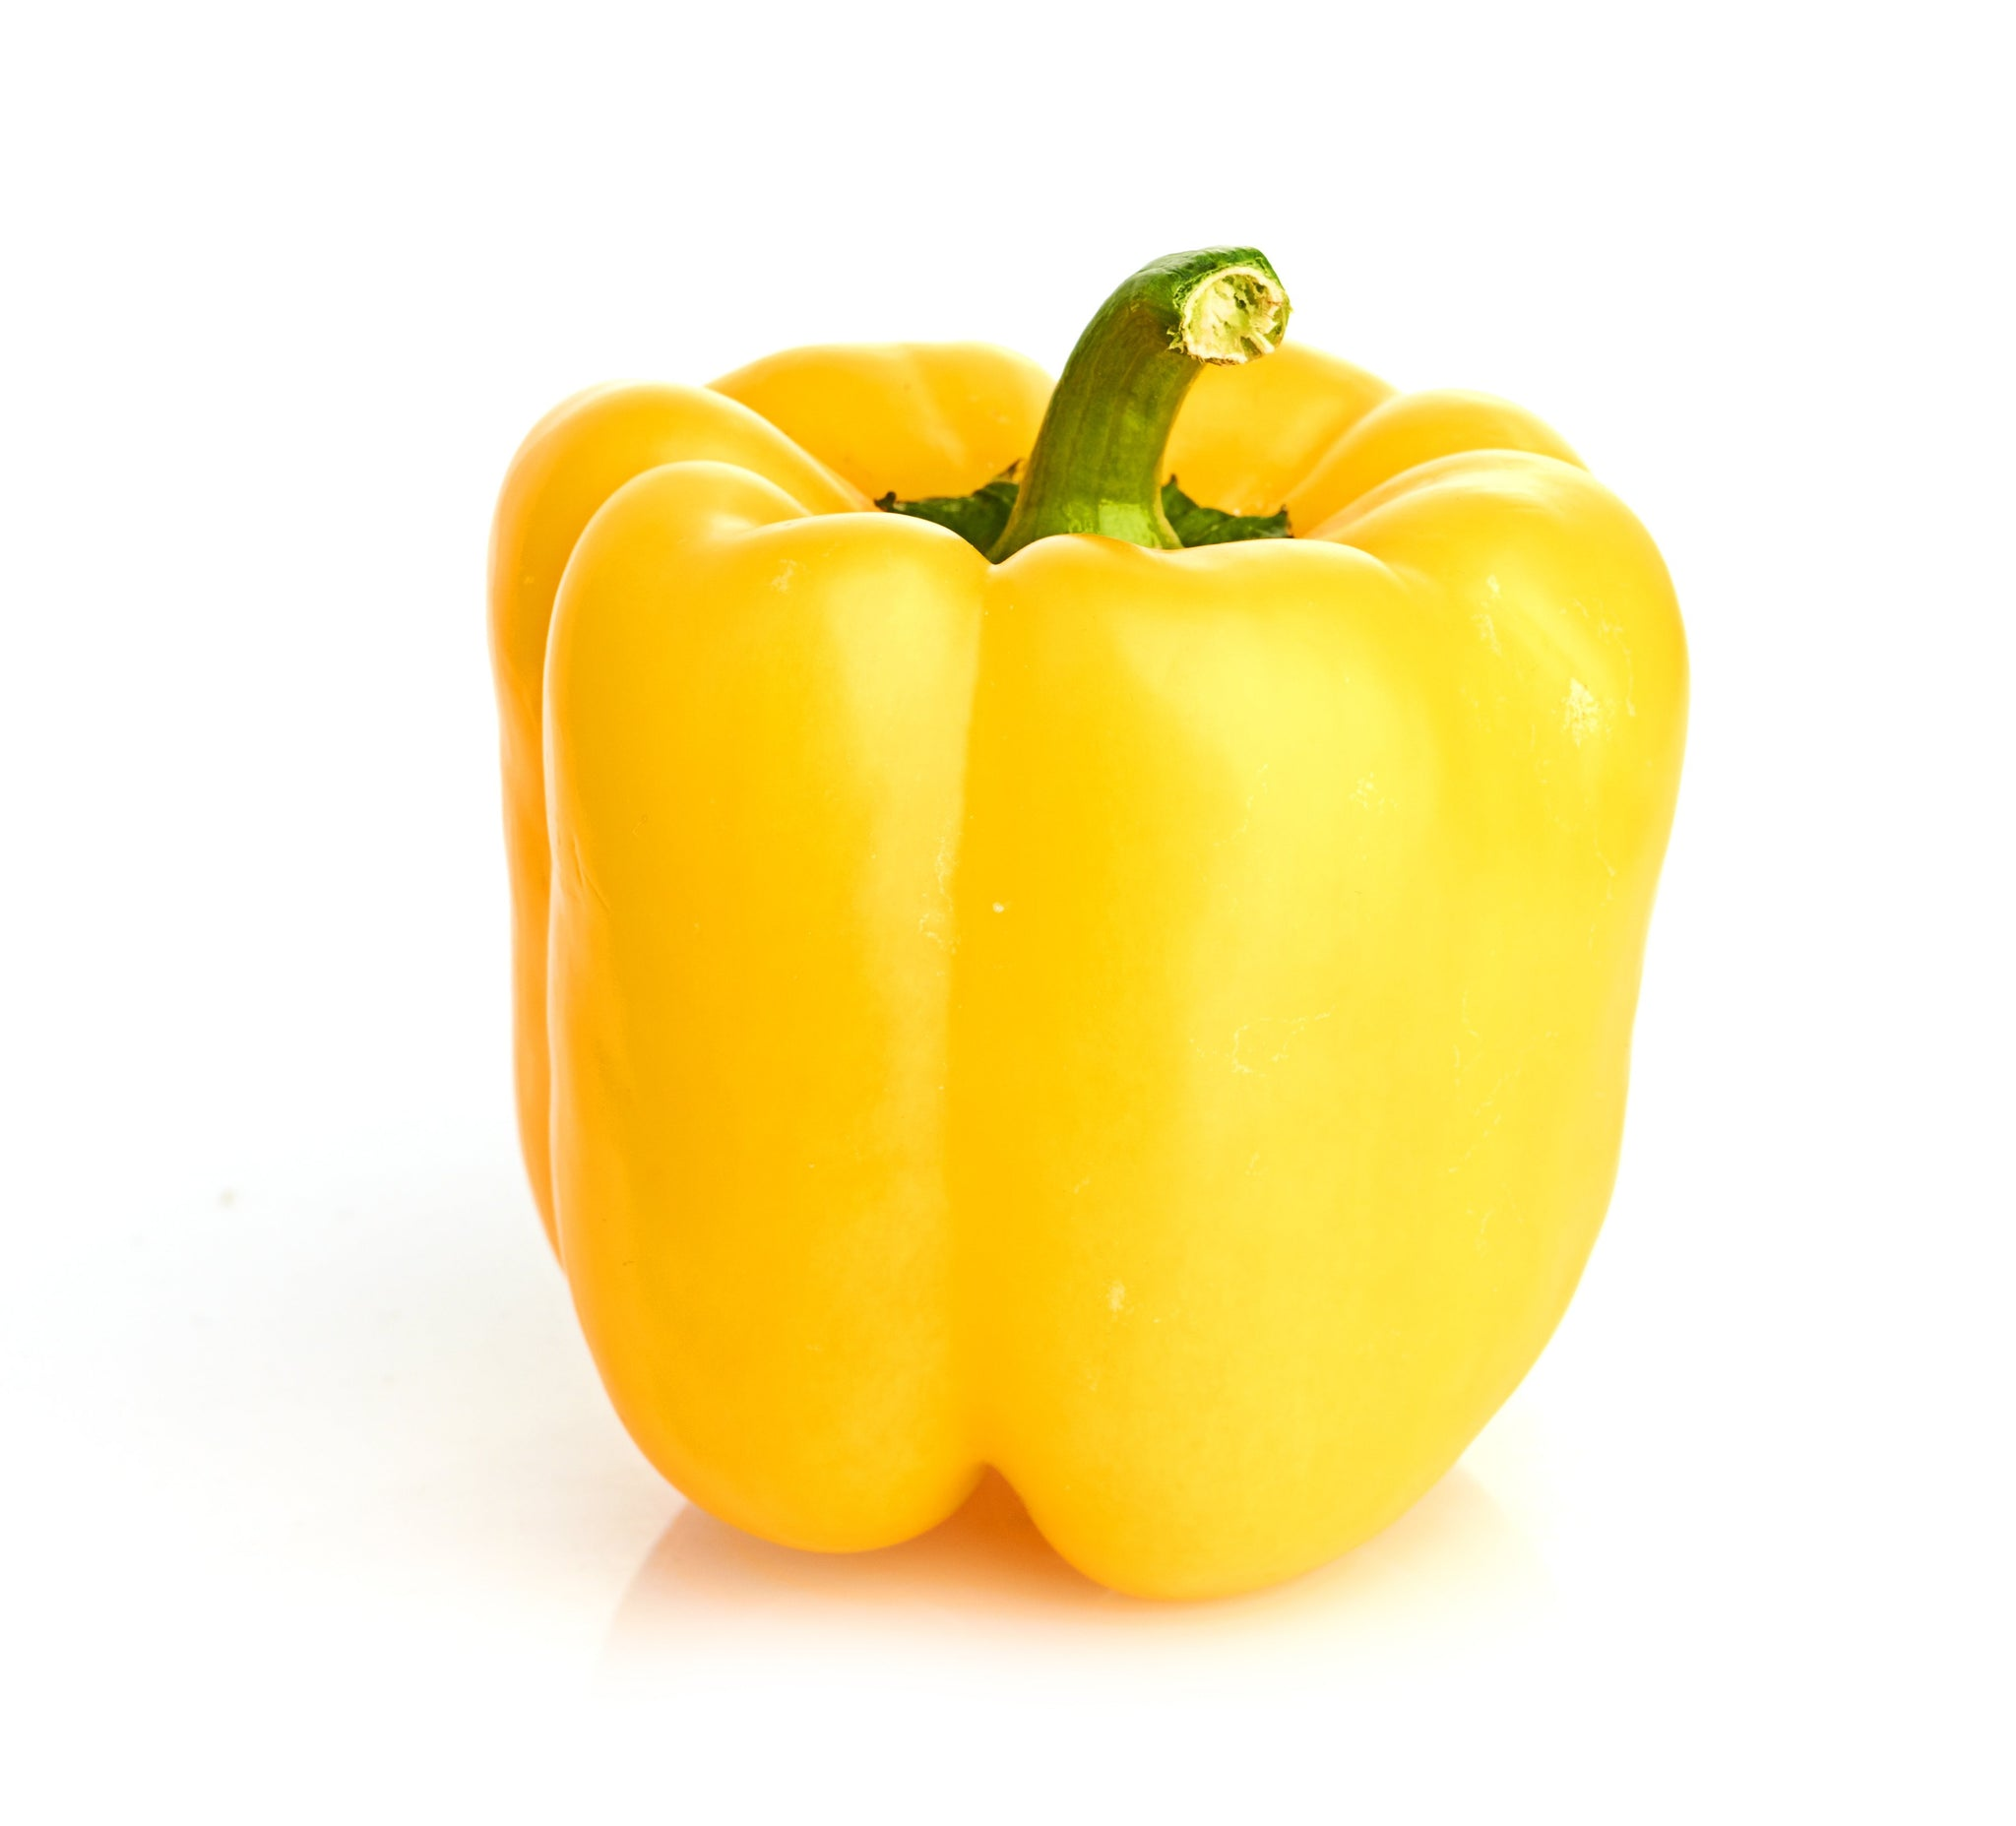 dub>Yellow pepper